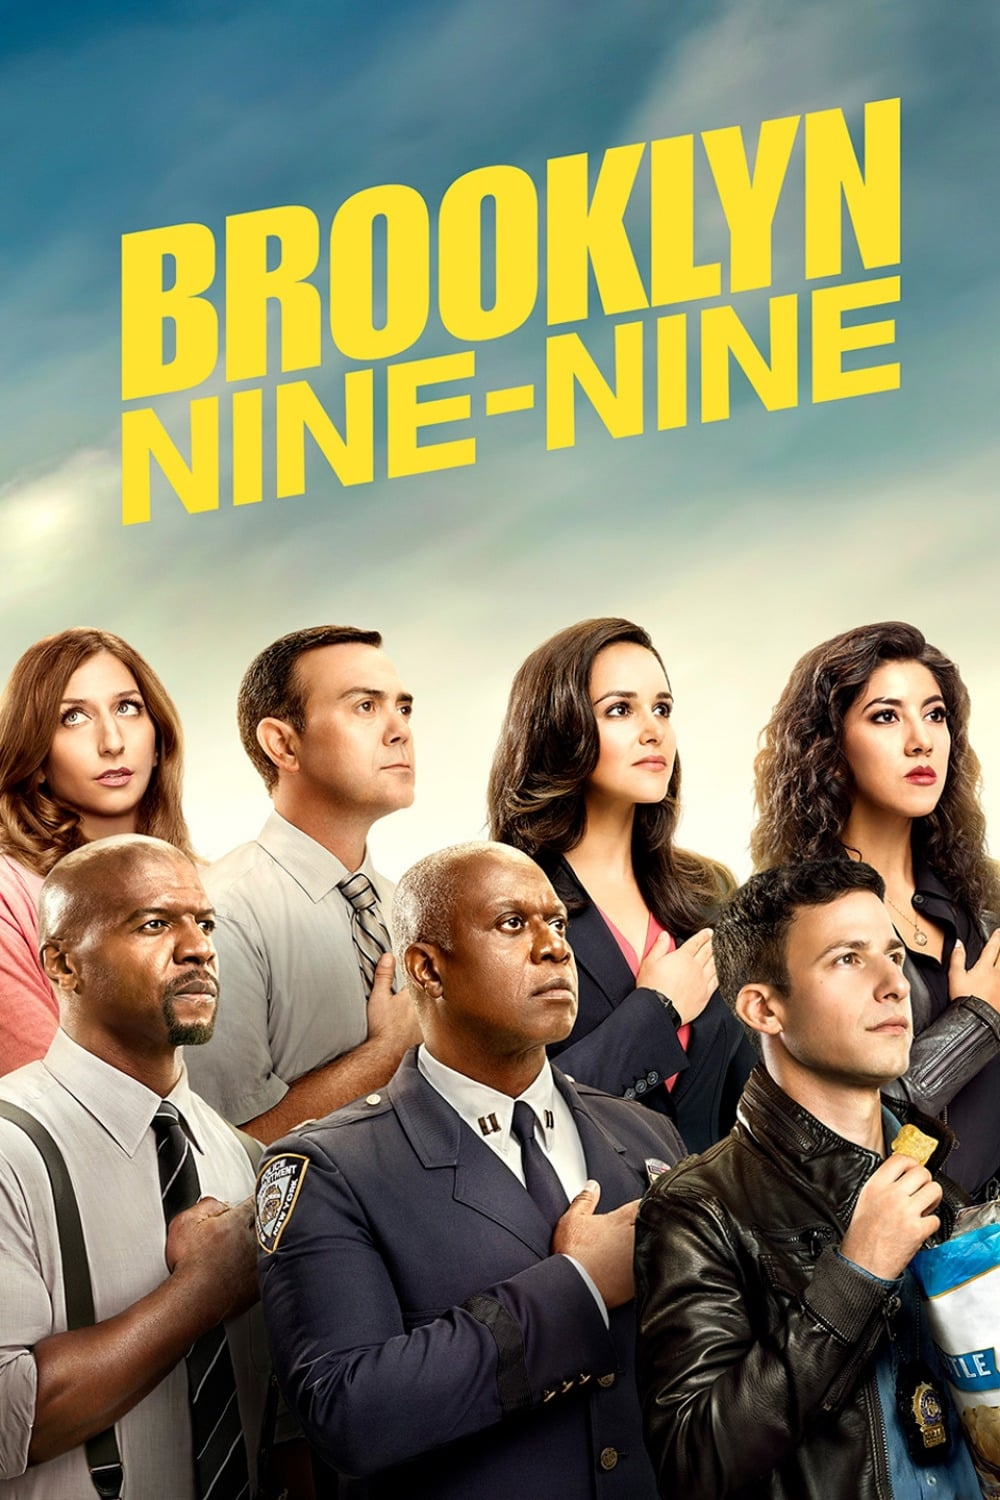 image for Brooklyn Nine-Nine